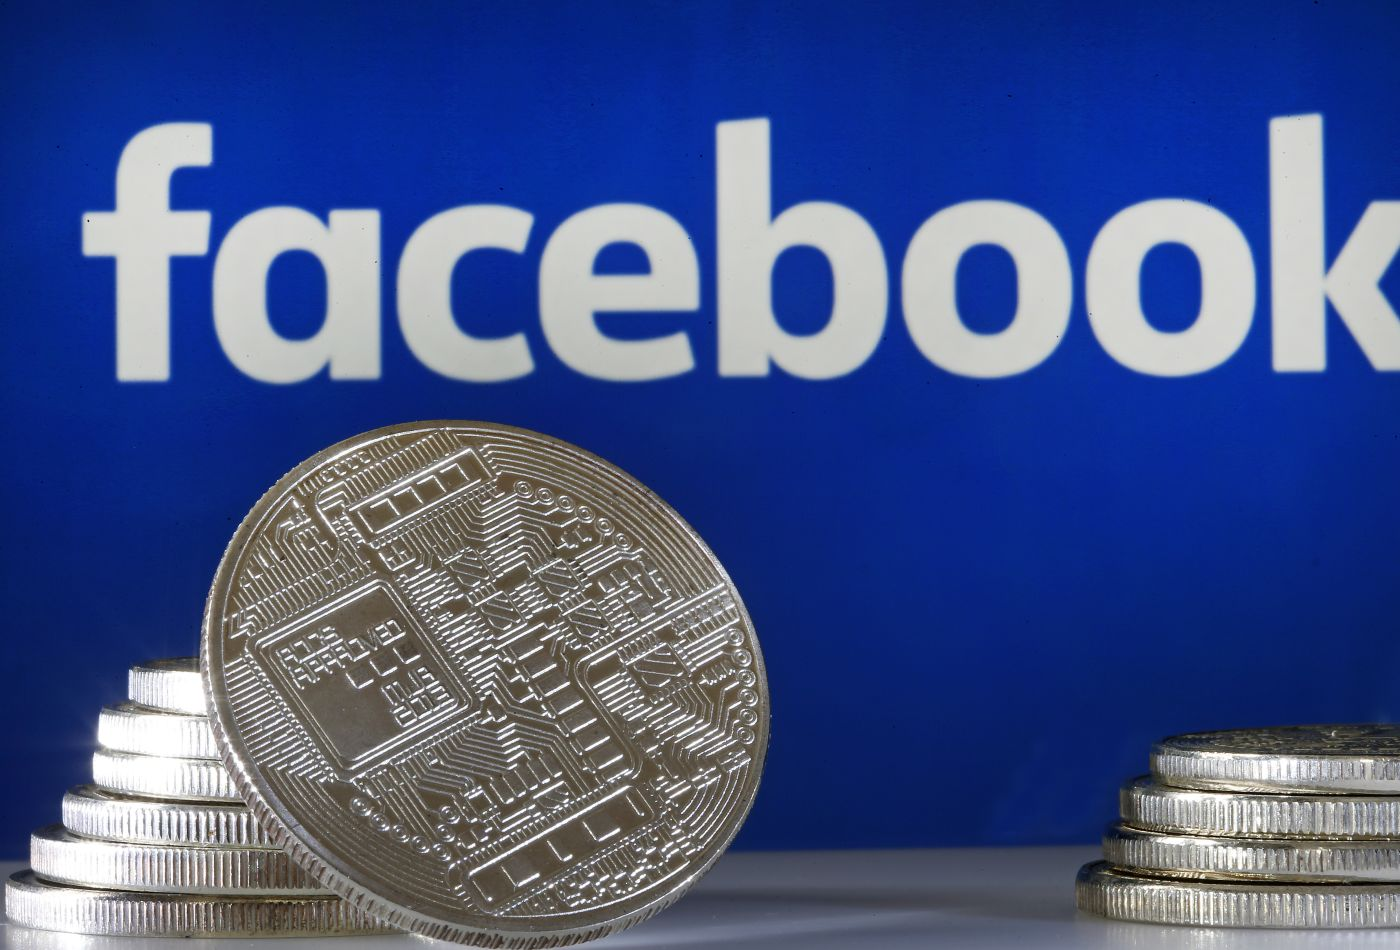 Facebook's cryptocurrency